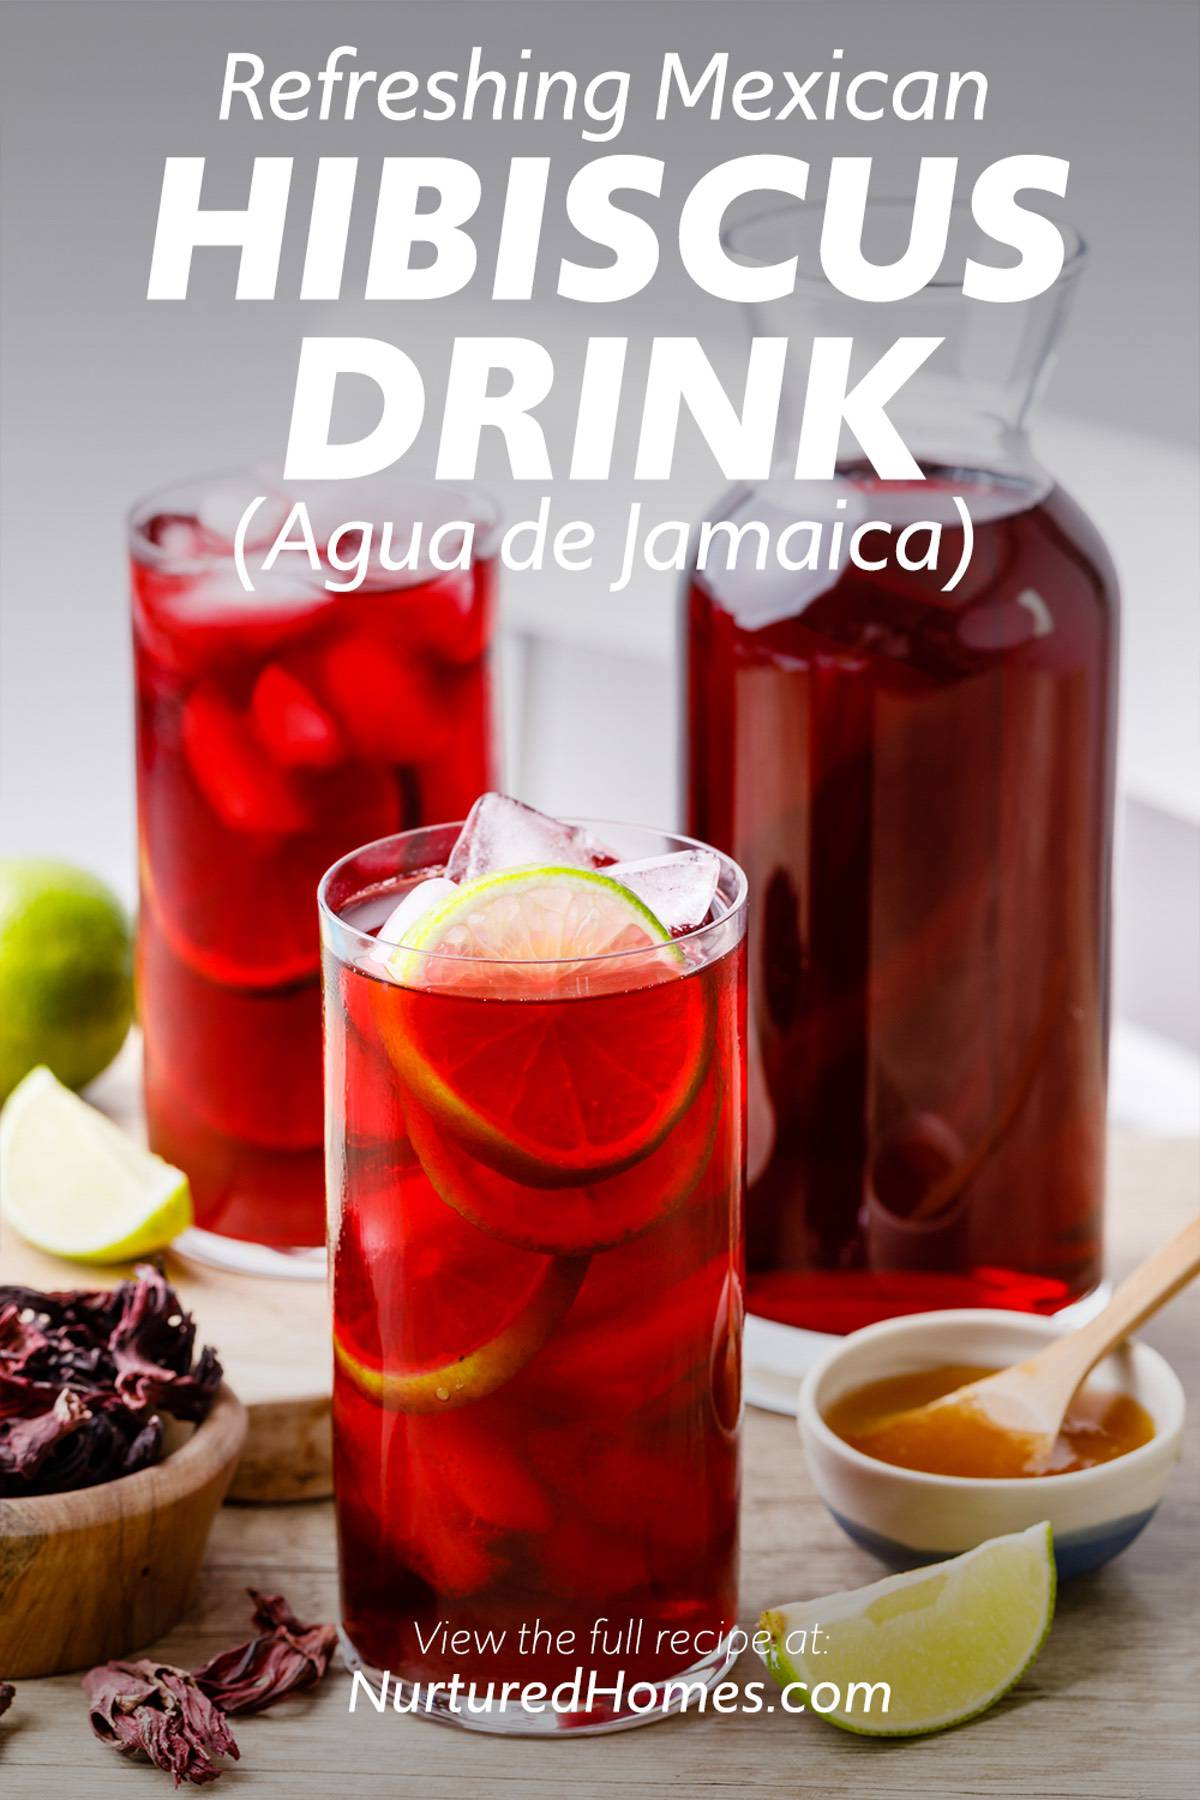 Refreshing Mexican Hibiscus Drink Agua de Jamaica